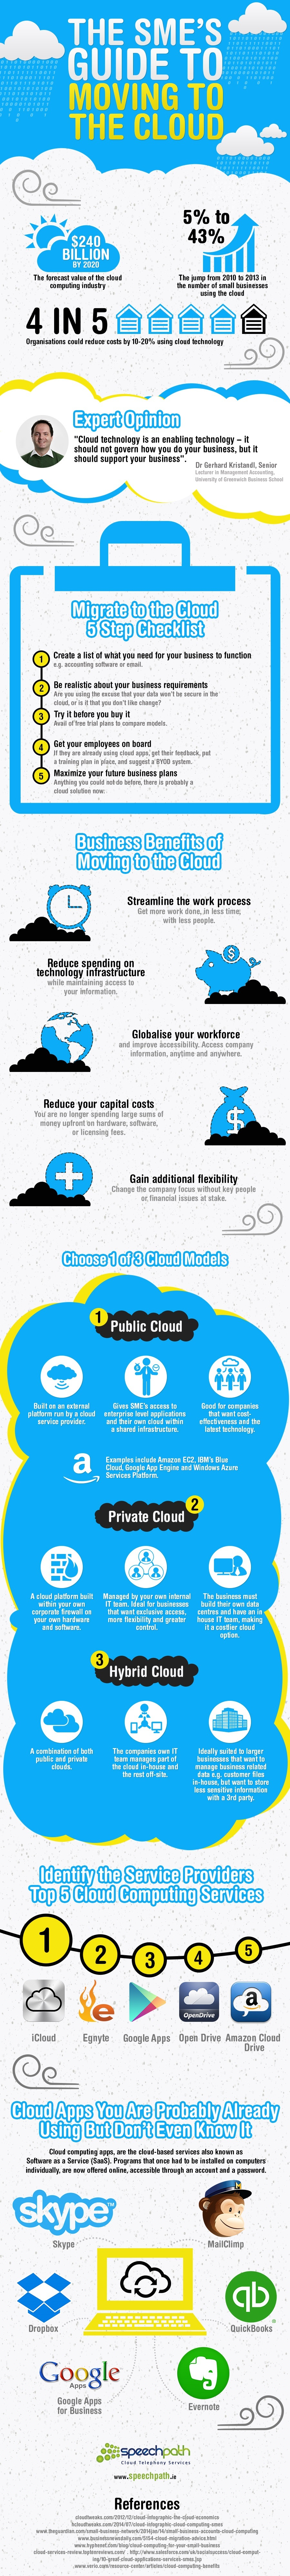 The SME's Guide to Moving to the Cloud